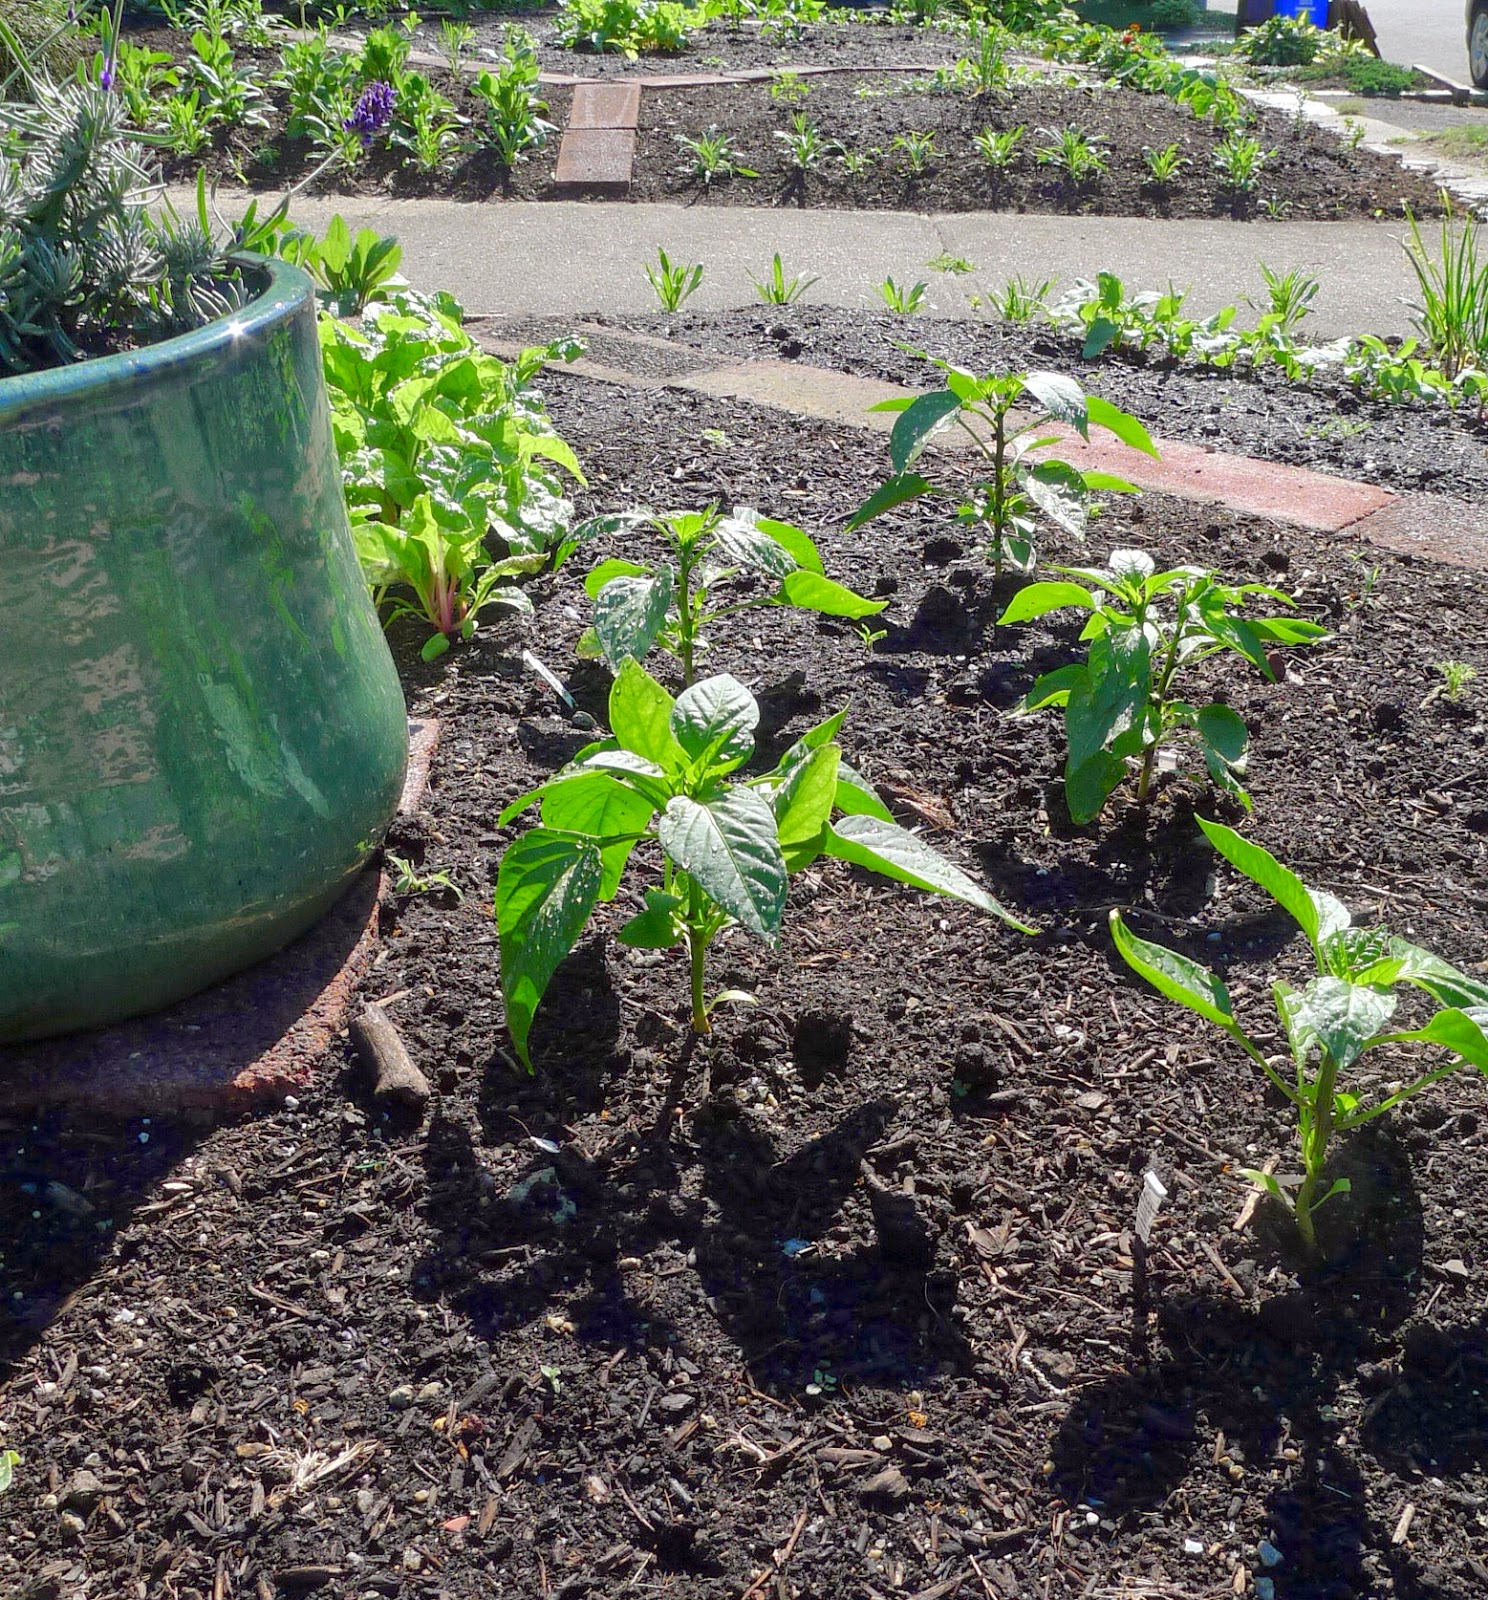 Sweet and Hot Peppers, using vegetables in an edible landscape